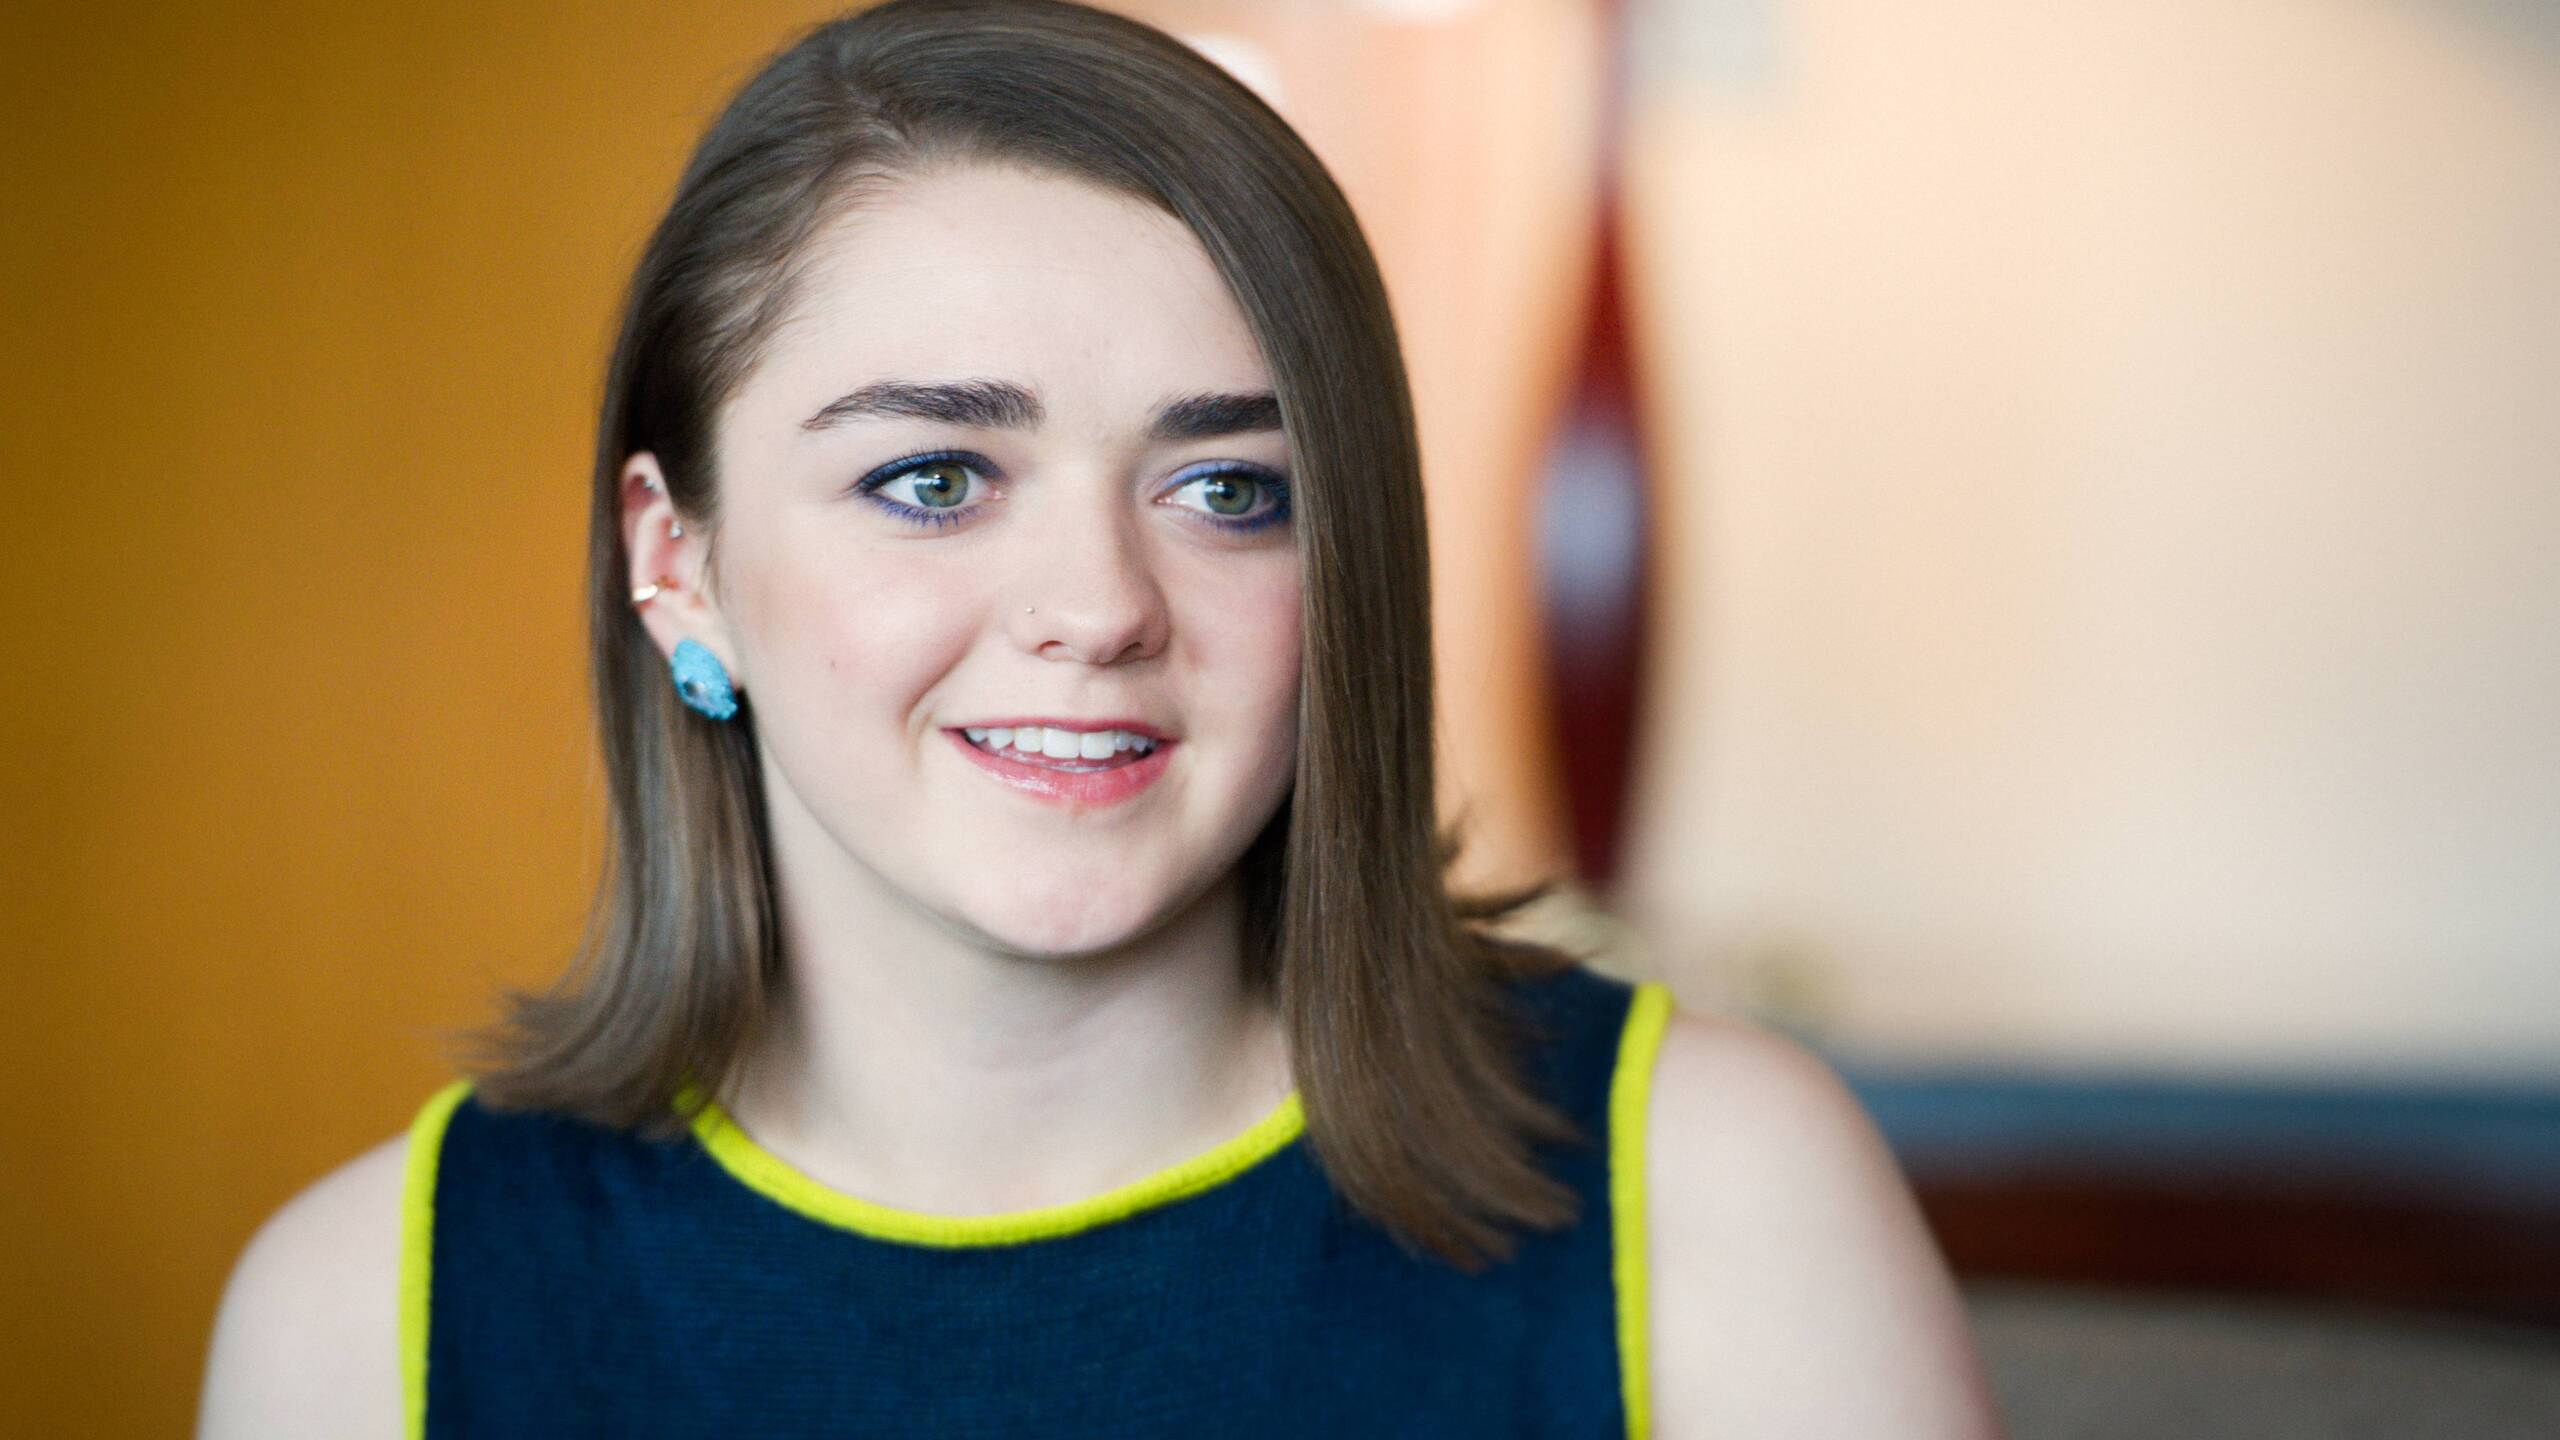 2560x1440 2018 Maisie Williams 5k 1440P Resolution HD 4k